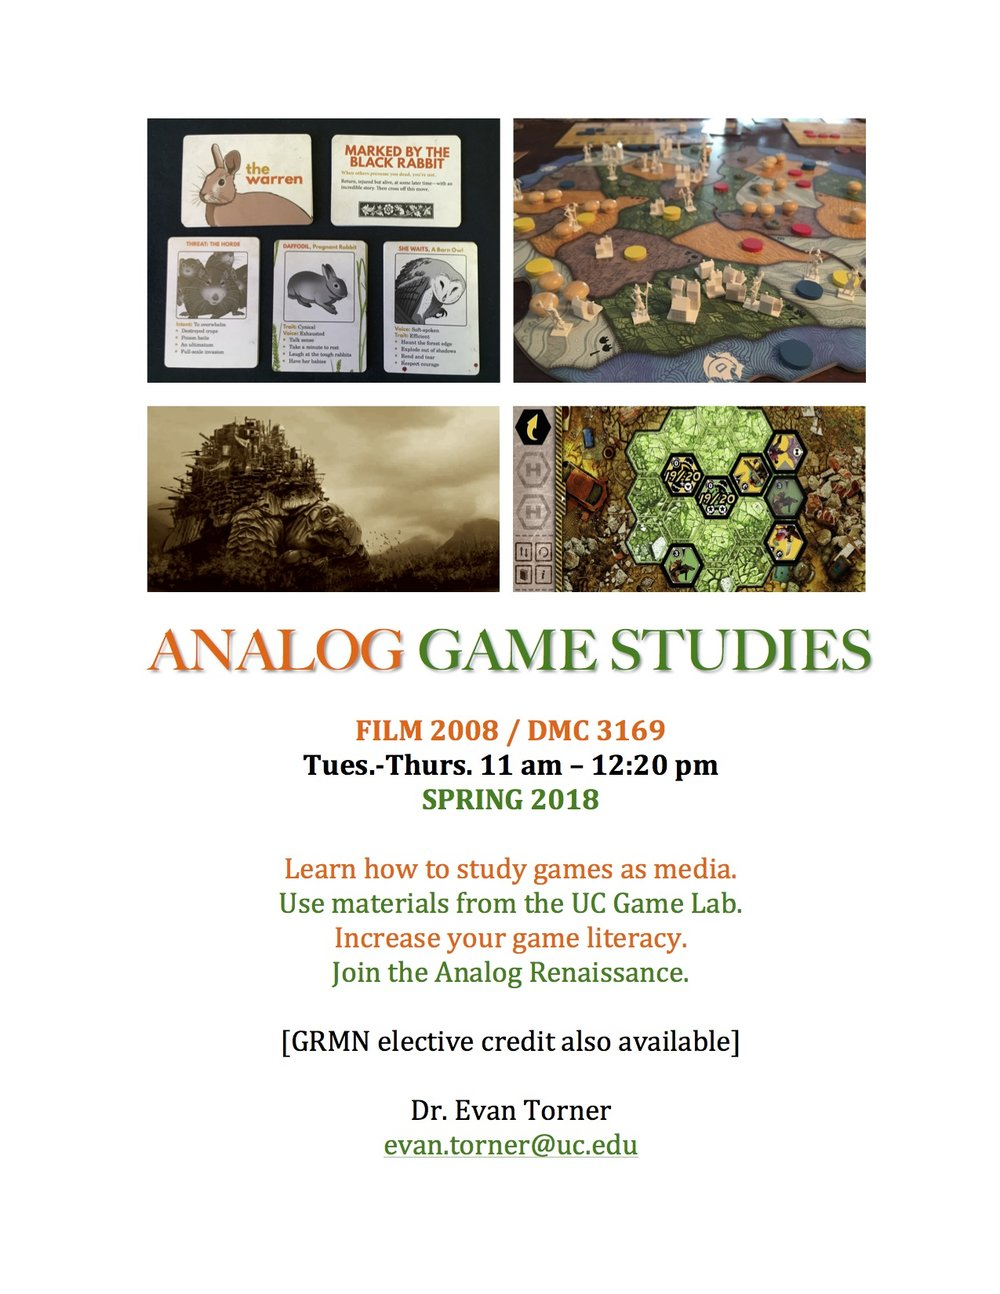 Analog Game Studies FILM 2008 Poster Spring 2018.jpg